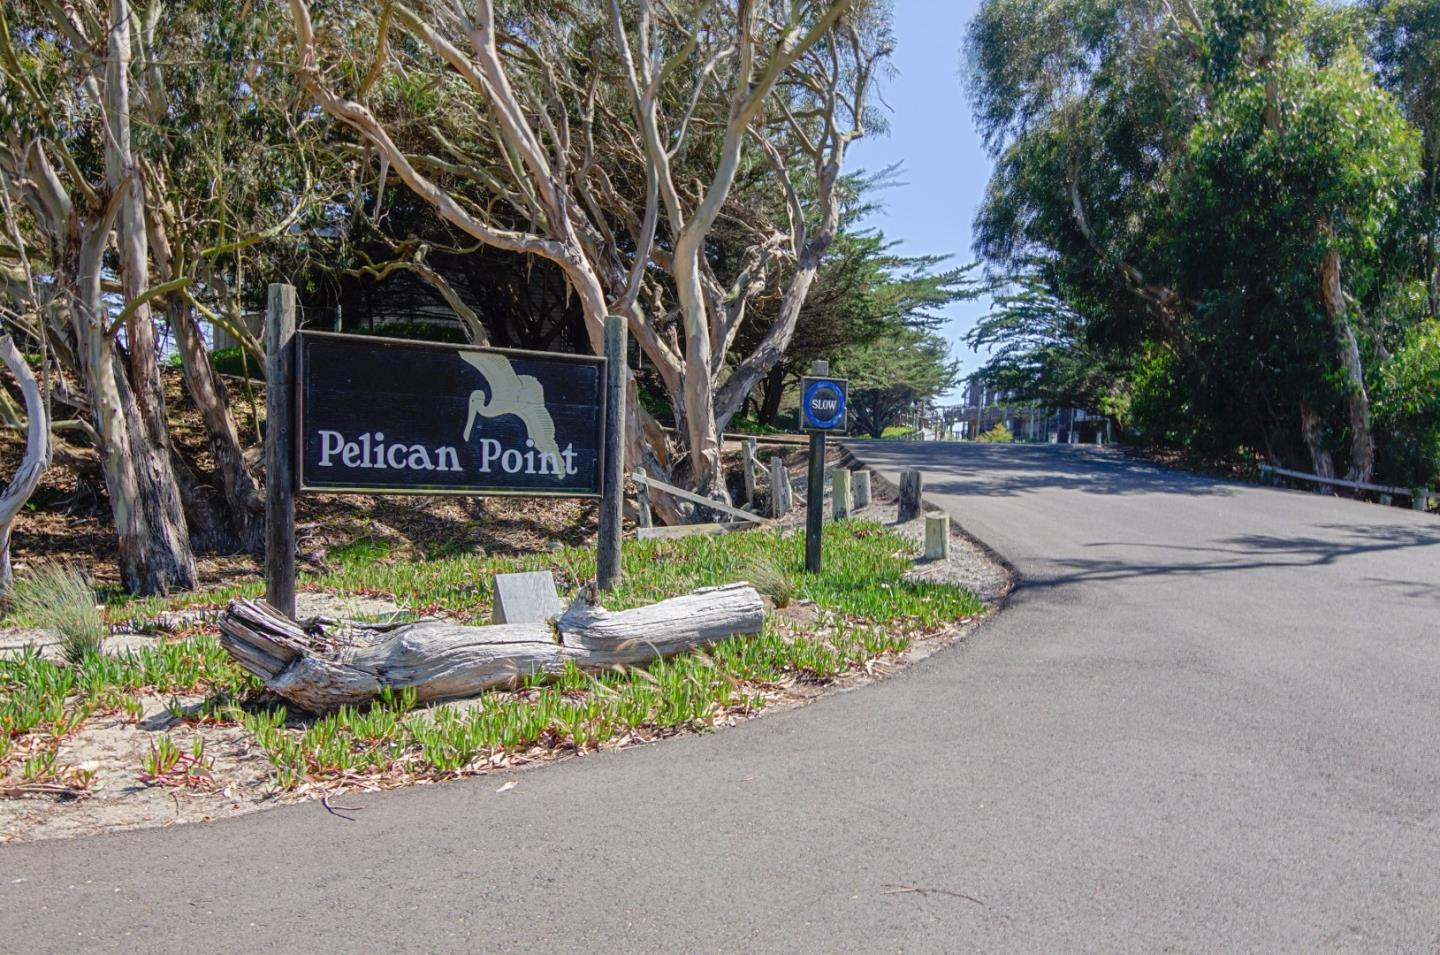 Additional photo for property listing at 72 Pelican Point  Watsonville, California 95076 United States